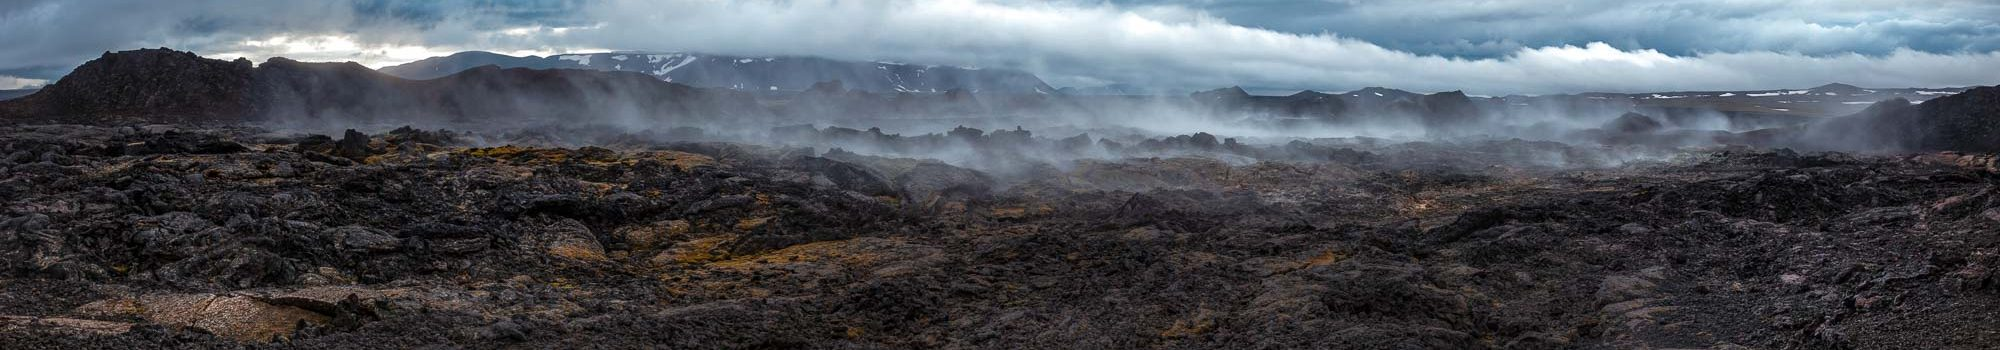 Panoramic view of steaming lava field at Krafla volcanic area